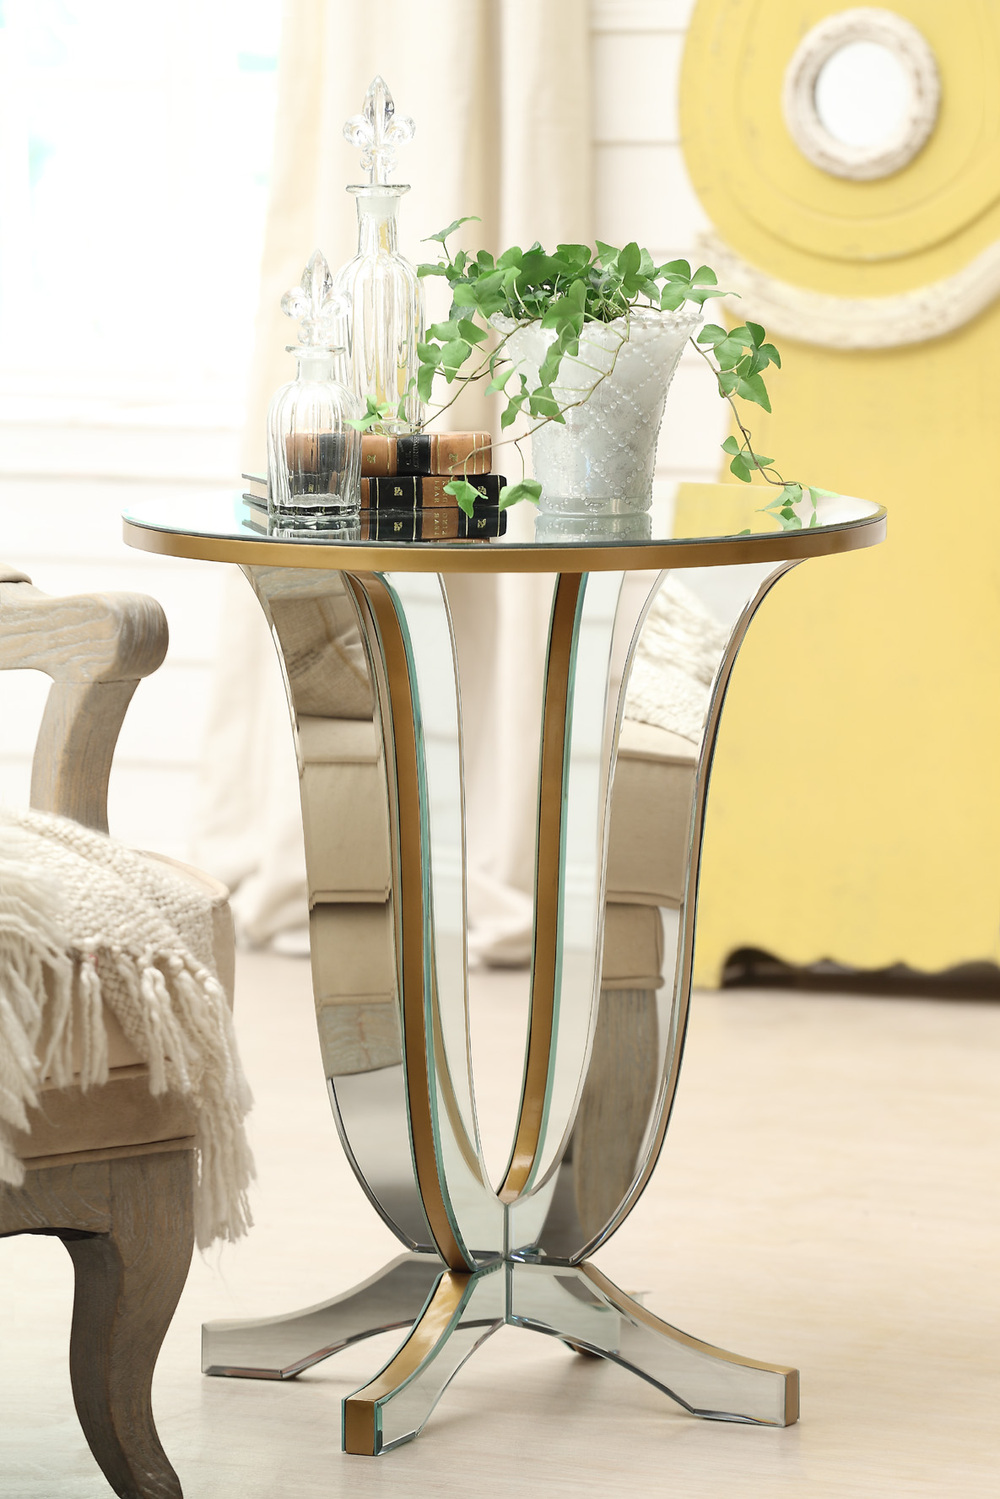 astonishing small accent tables for living room table gold furniture modern kijiji white glass antique decorative target round outdoor full size chairside with drawer black and